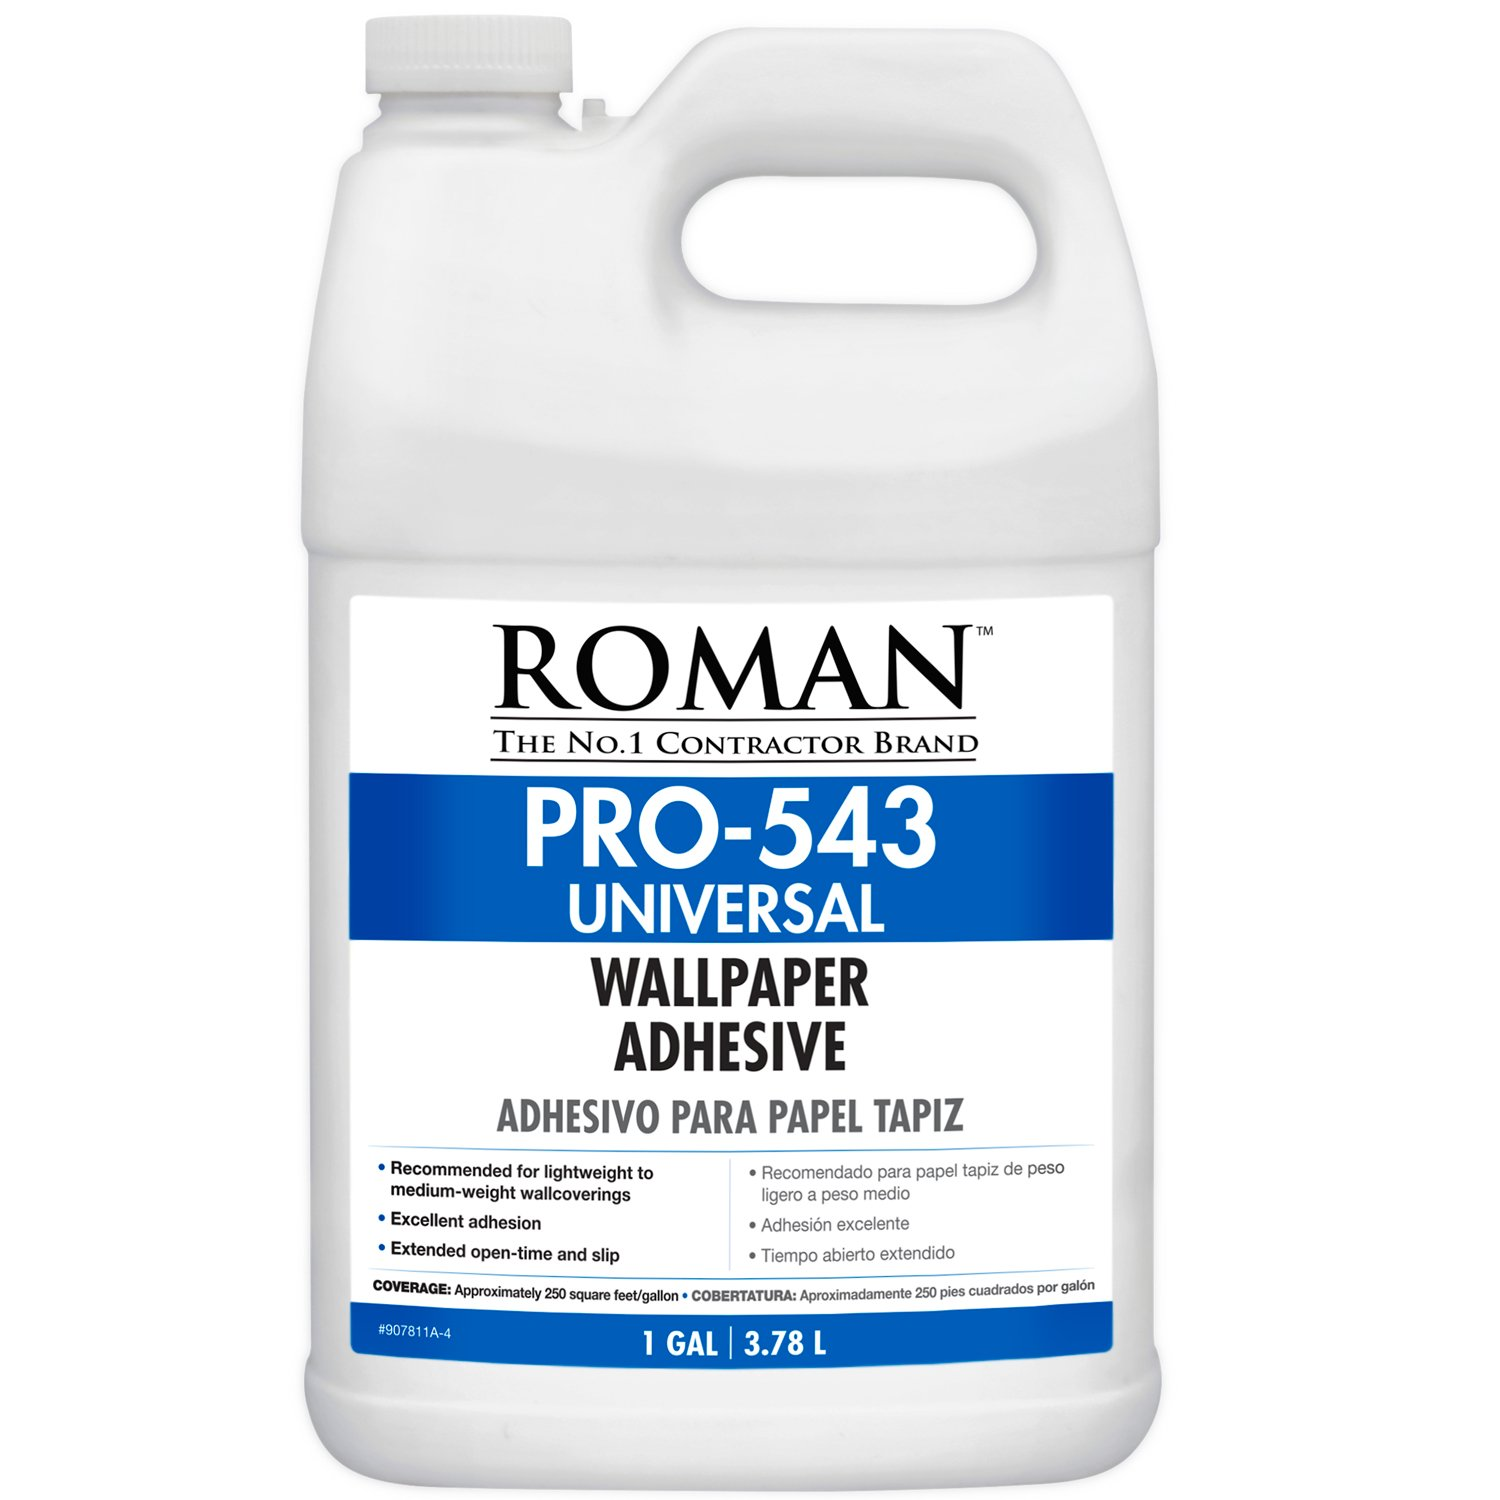 Roman 207811 PRO-543 Universal Wallpaper and Border Adhesive with Applicator, 1 gal by Golden Harvest